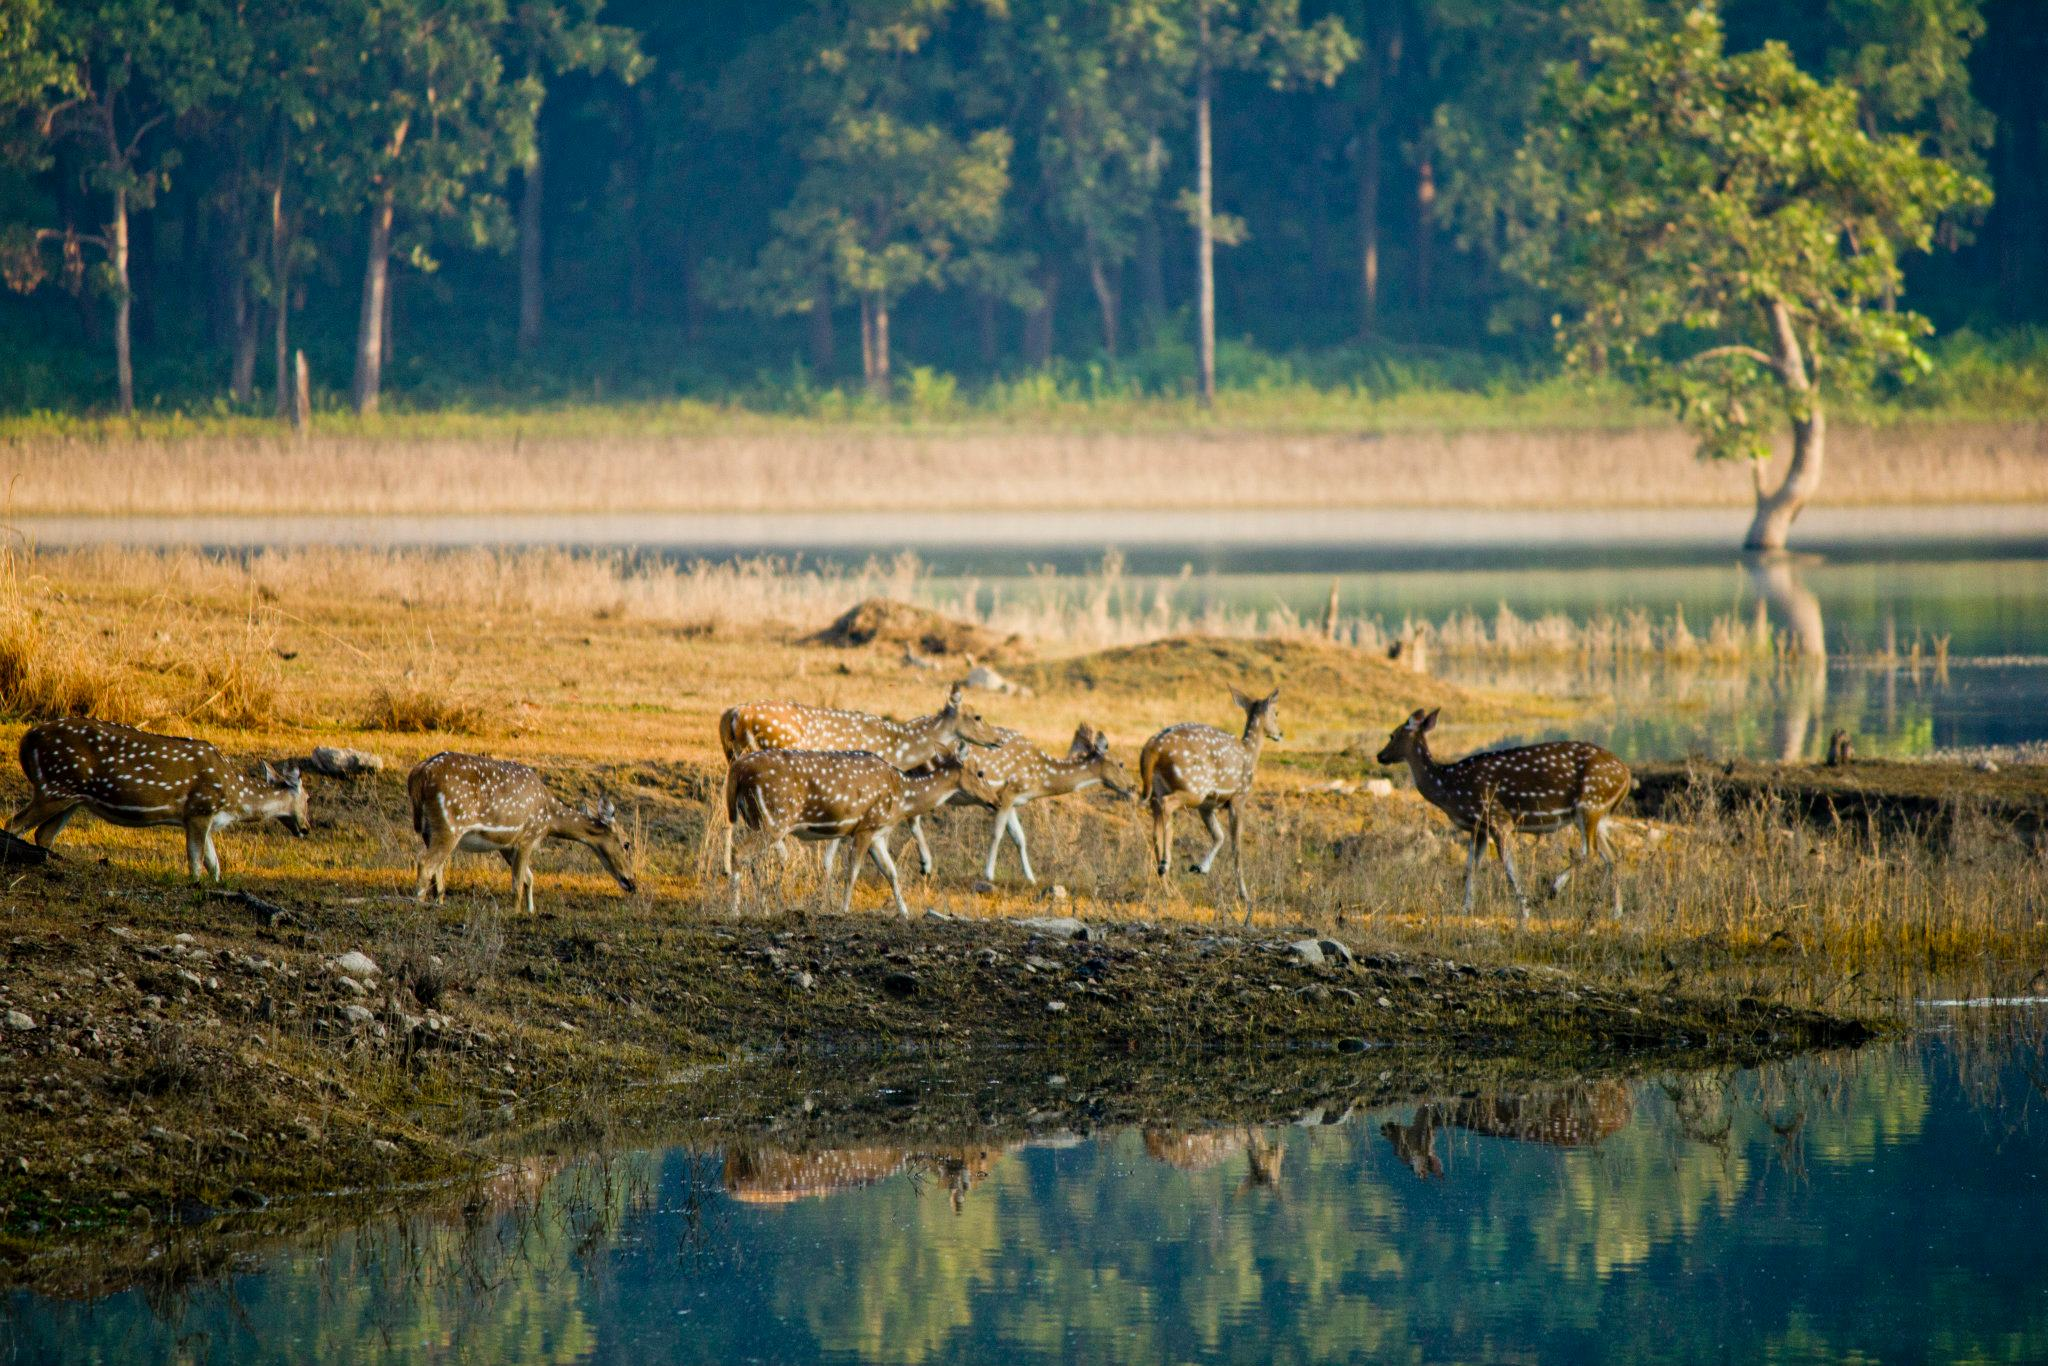 Pench National Park - Pench Image